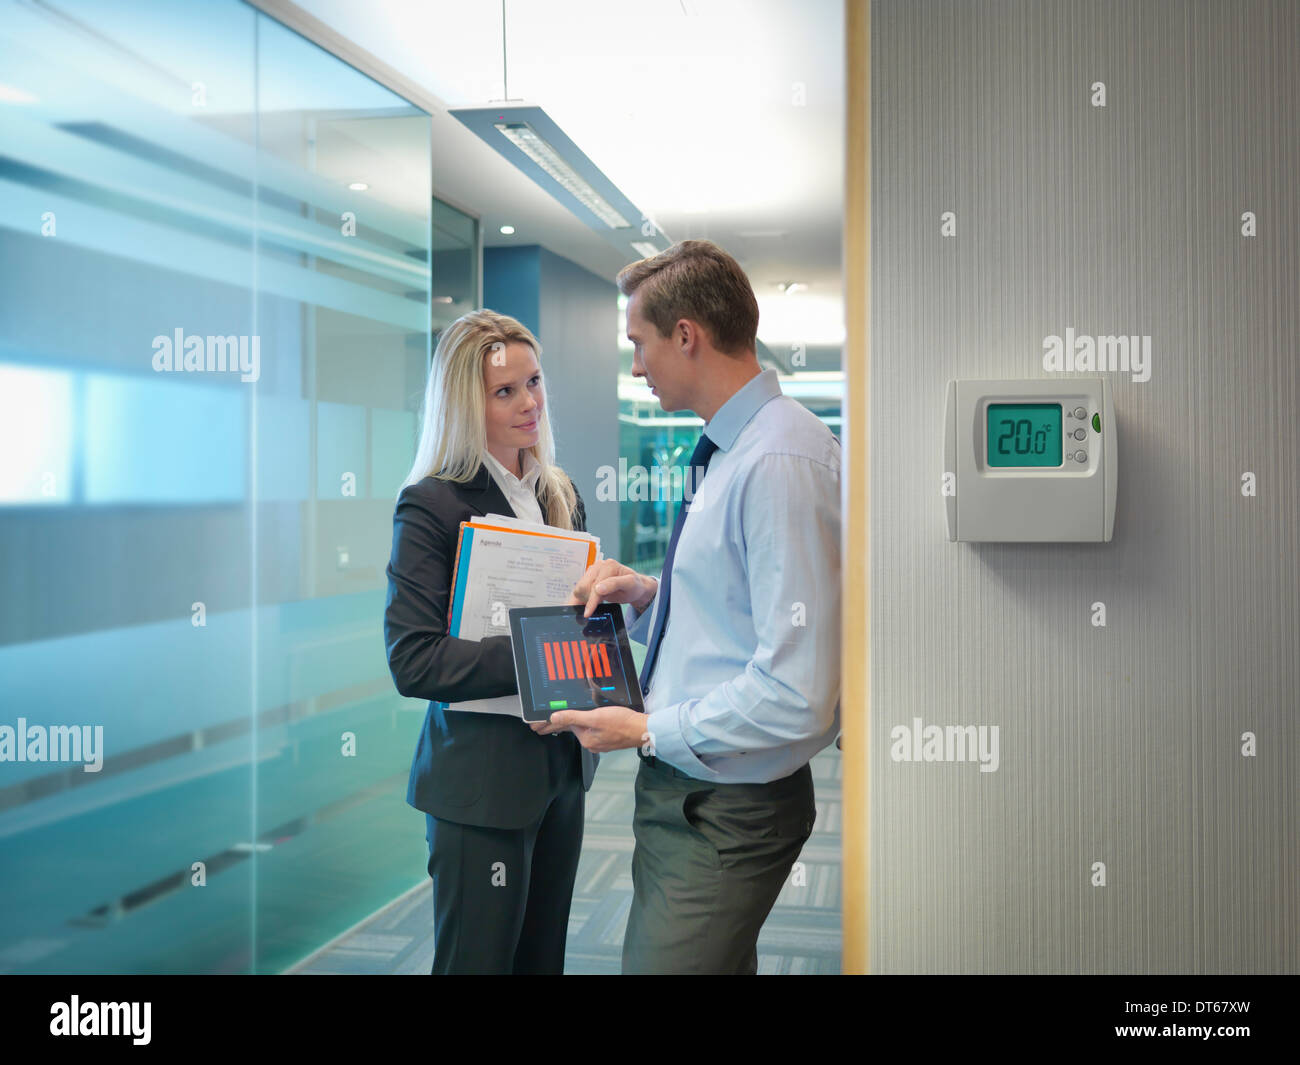 Office workers holding digital tablet and files discussing office energy use - Stock Image